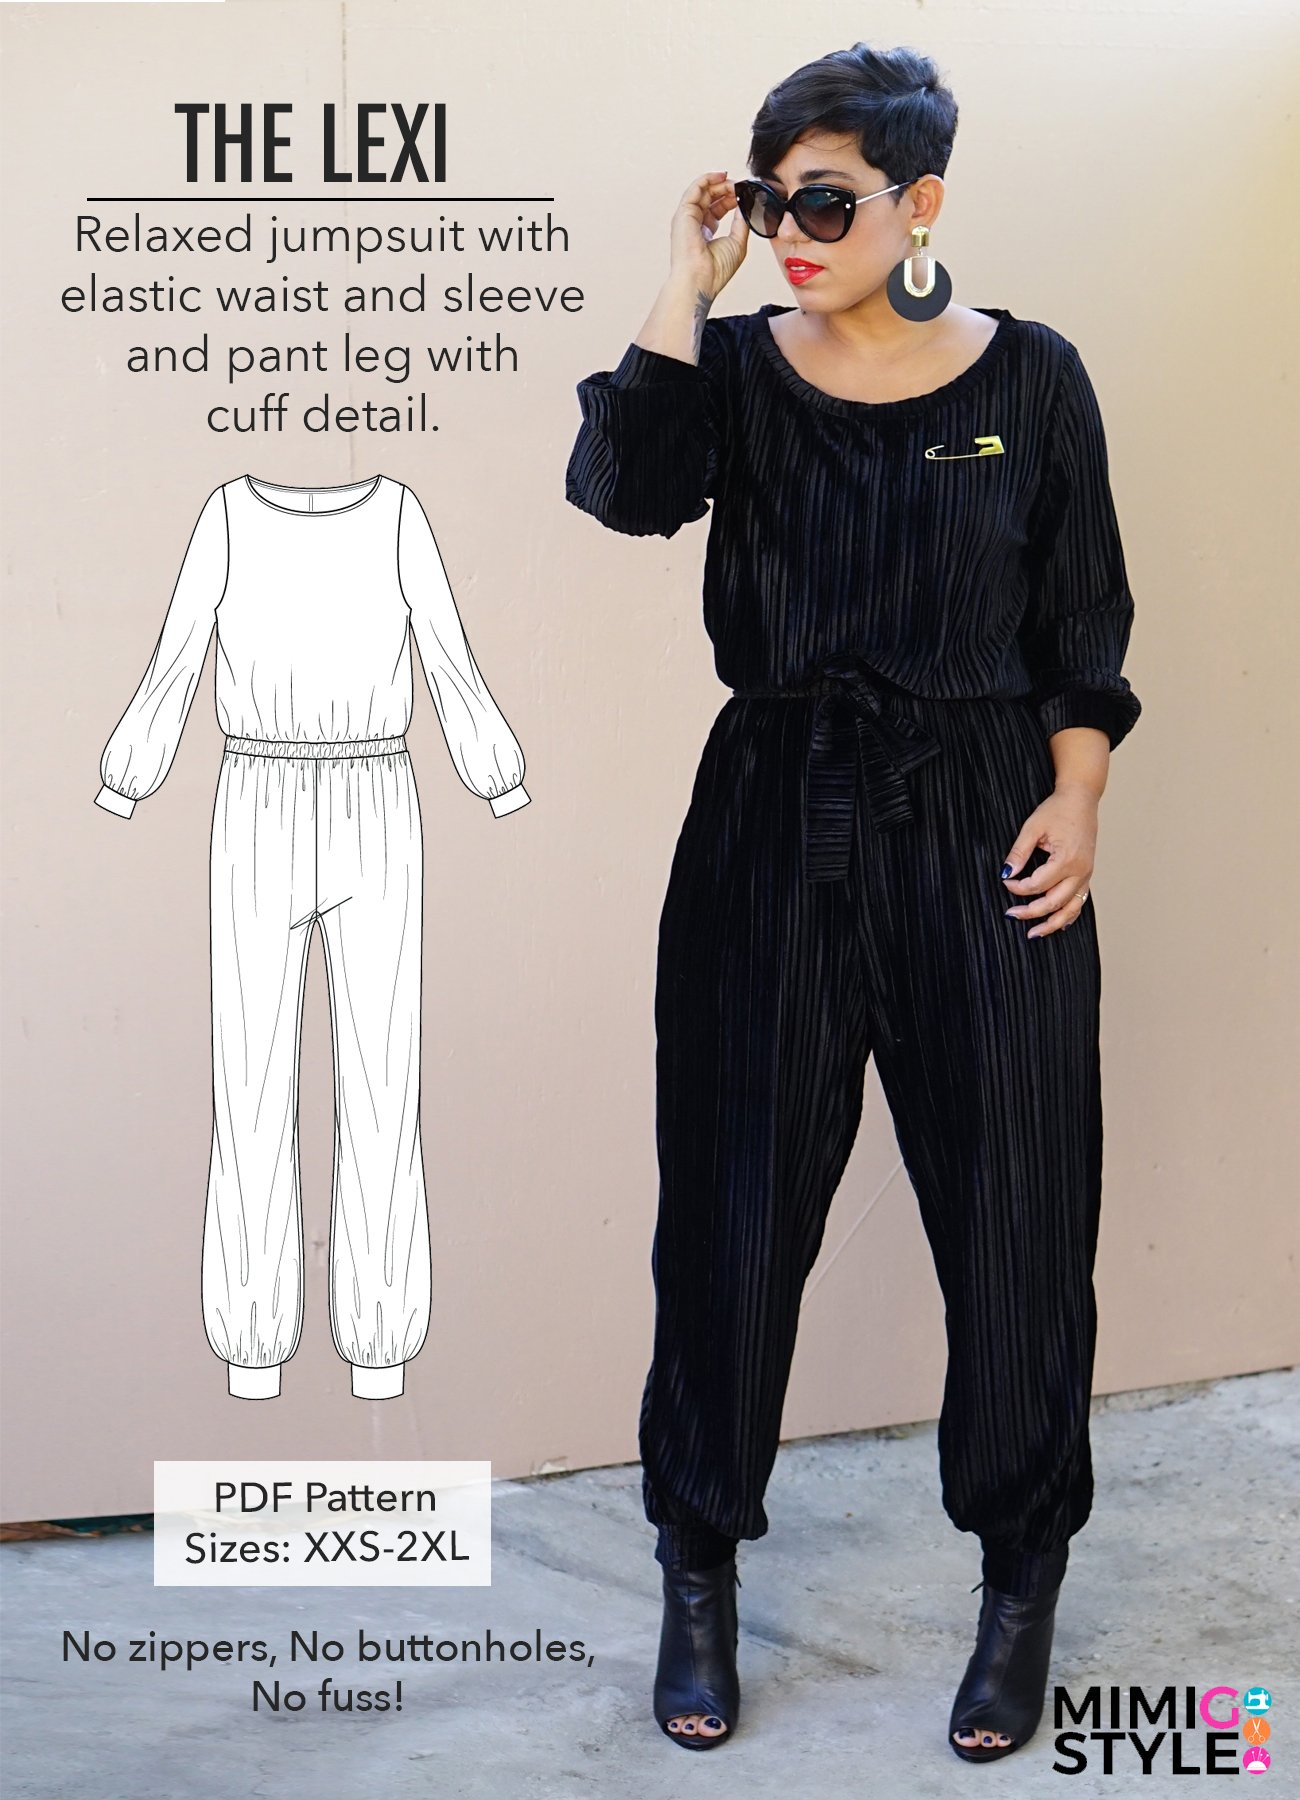 the leximimi g style in colabwith sew sew def  - We love this comfortable yet stylish jumpsuit from Mimi G. This is a PDF pattern for you to print off at home or there is a great print shop ready version so you can have it printed for you! This is a relaxed fit jumpsuit with an elasticated waist sleeve and trouser cuffs.